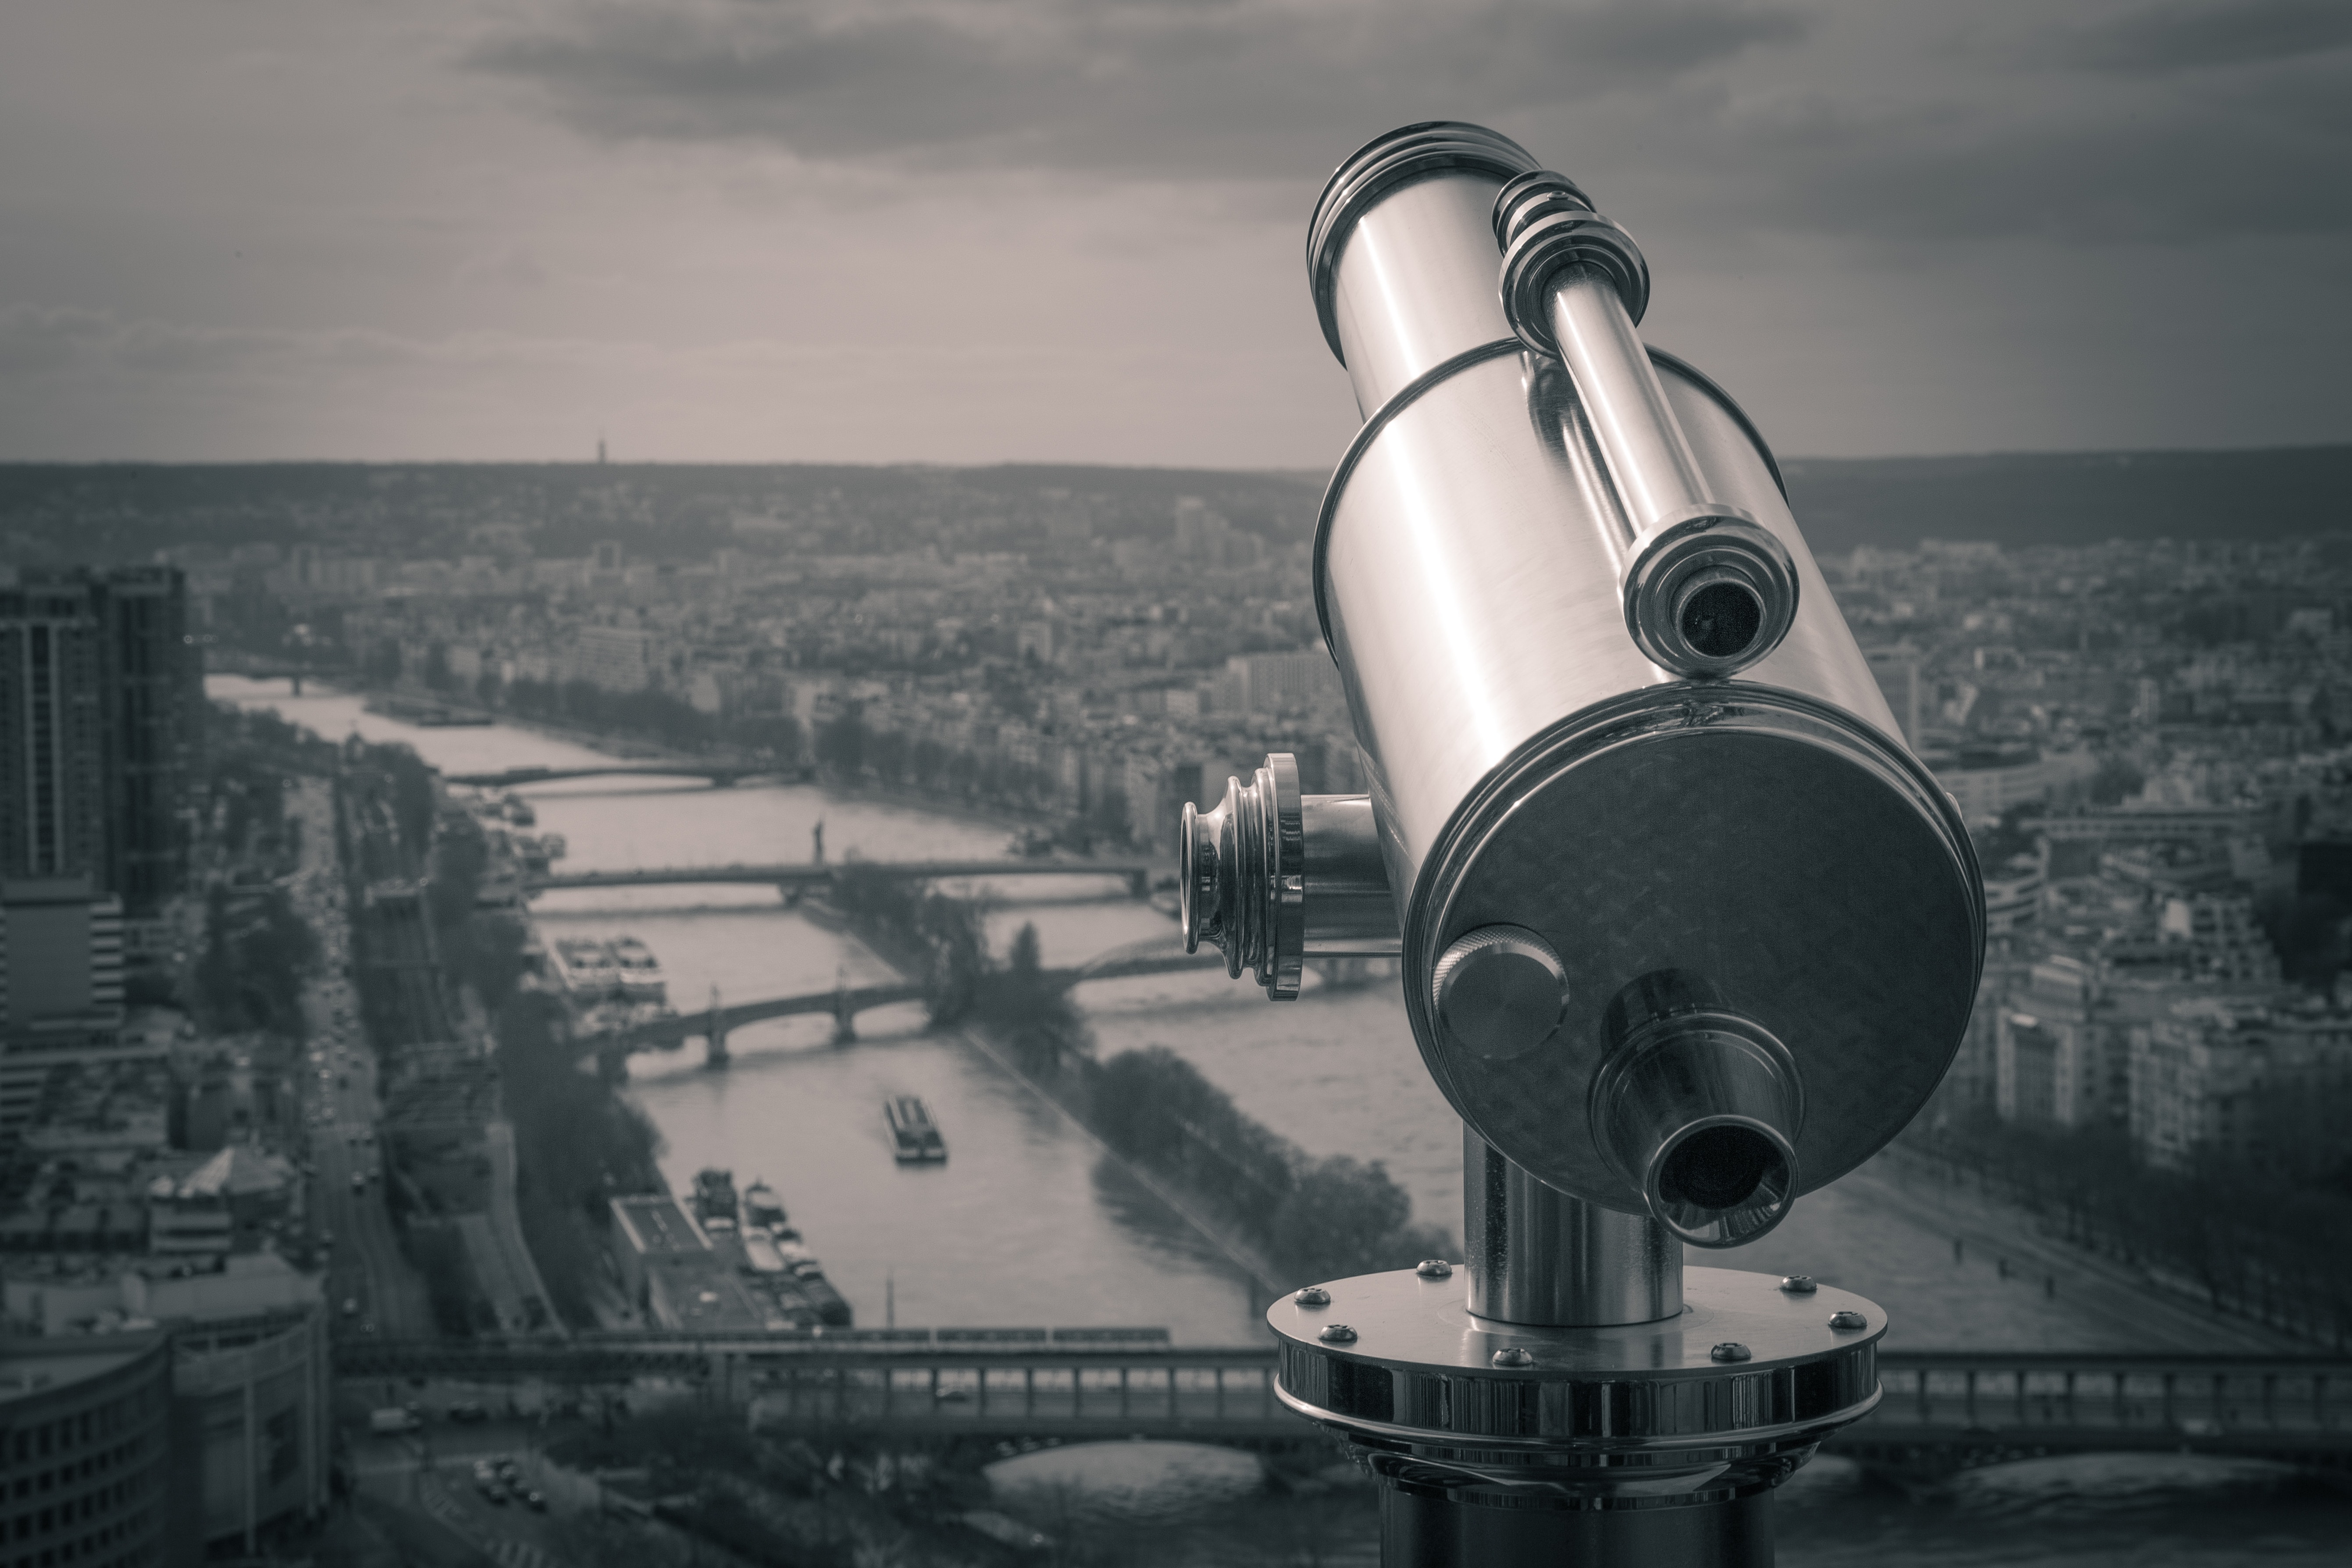 Grayscale Photography of Observation Telescope Overlooking City Riverbank, Architecture, Lens, Water, View deck, HQ Photo